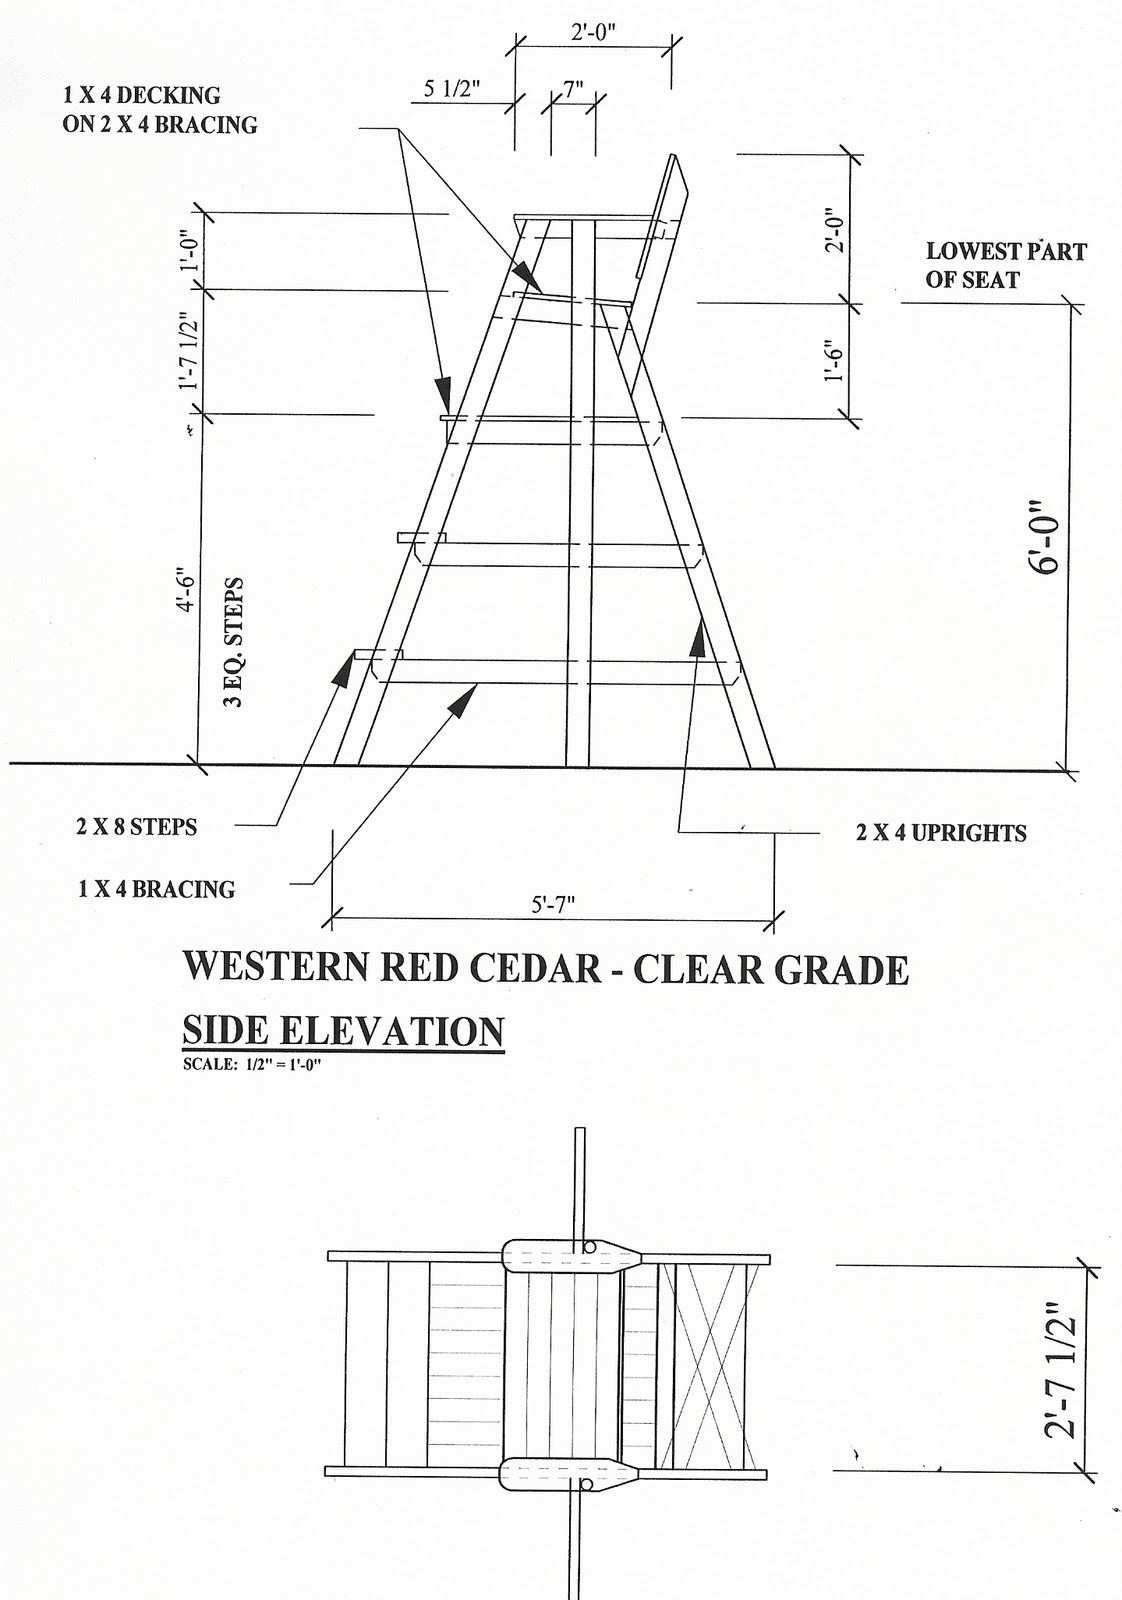 how to build a lifeguard chair make cover from sheet a1a shark